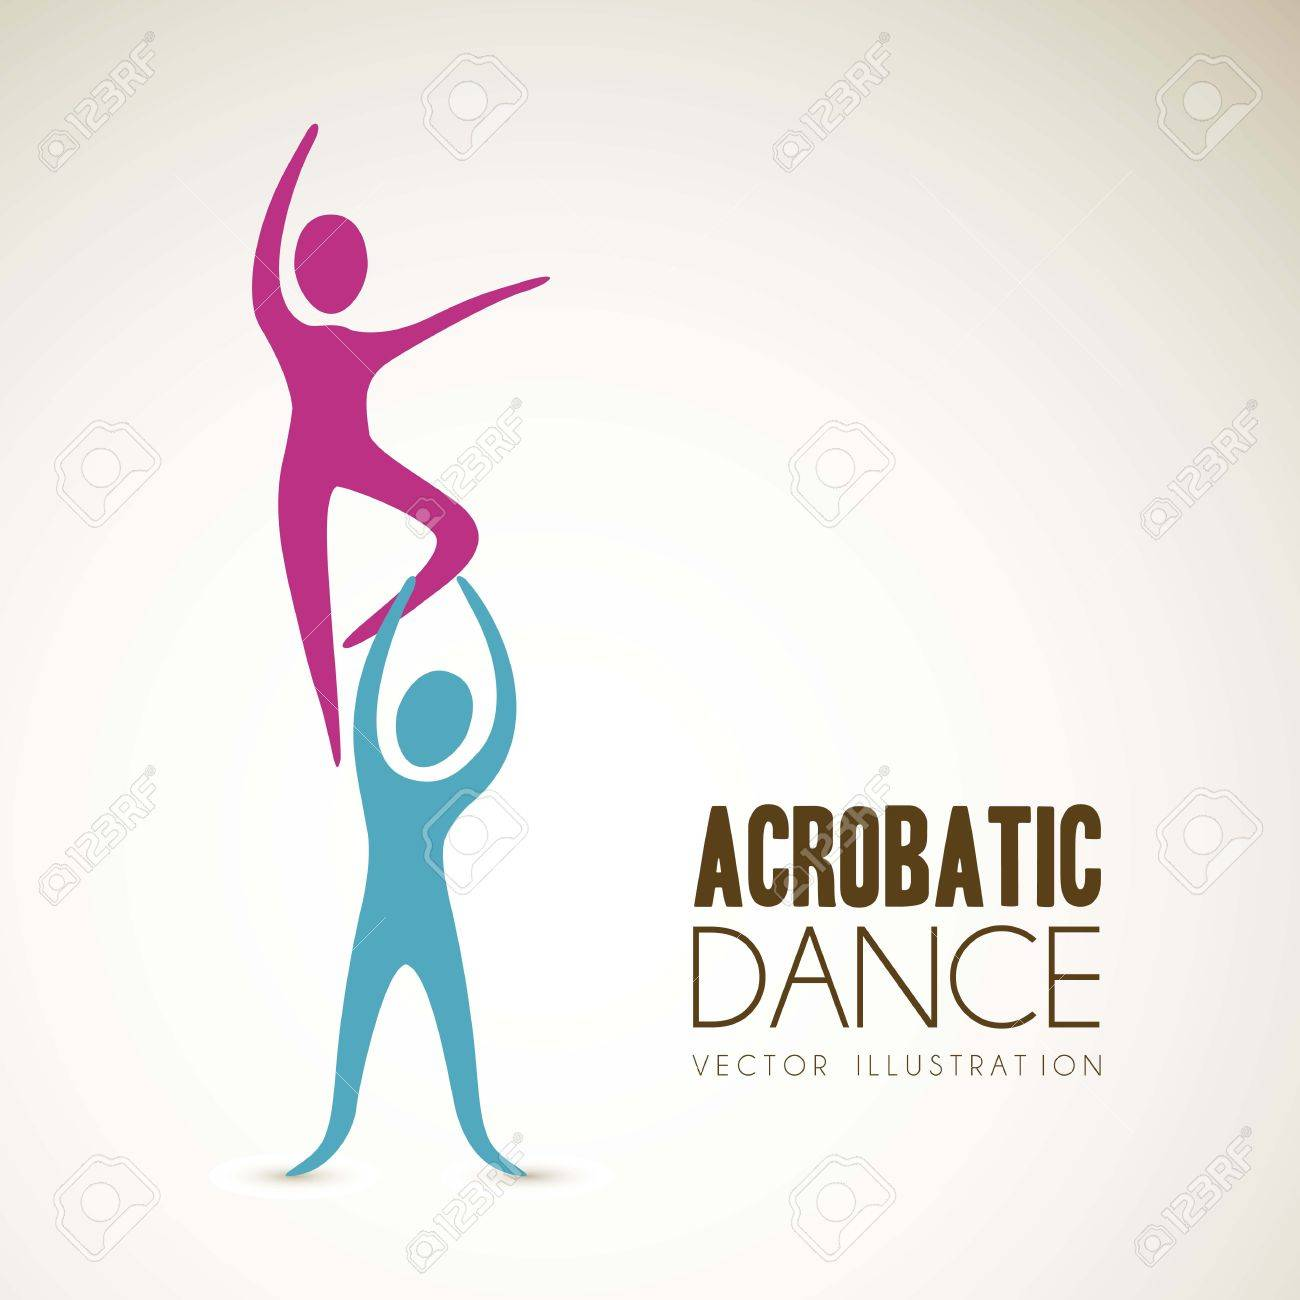 Illustration of couples dance positions, vector illustration Stock Vector - 15084137